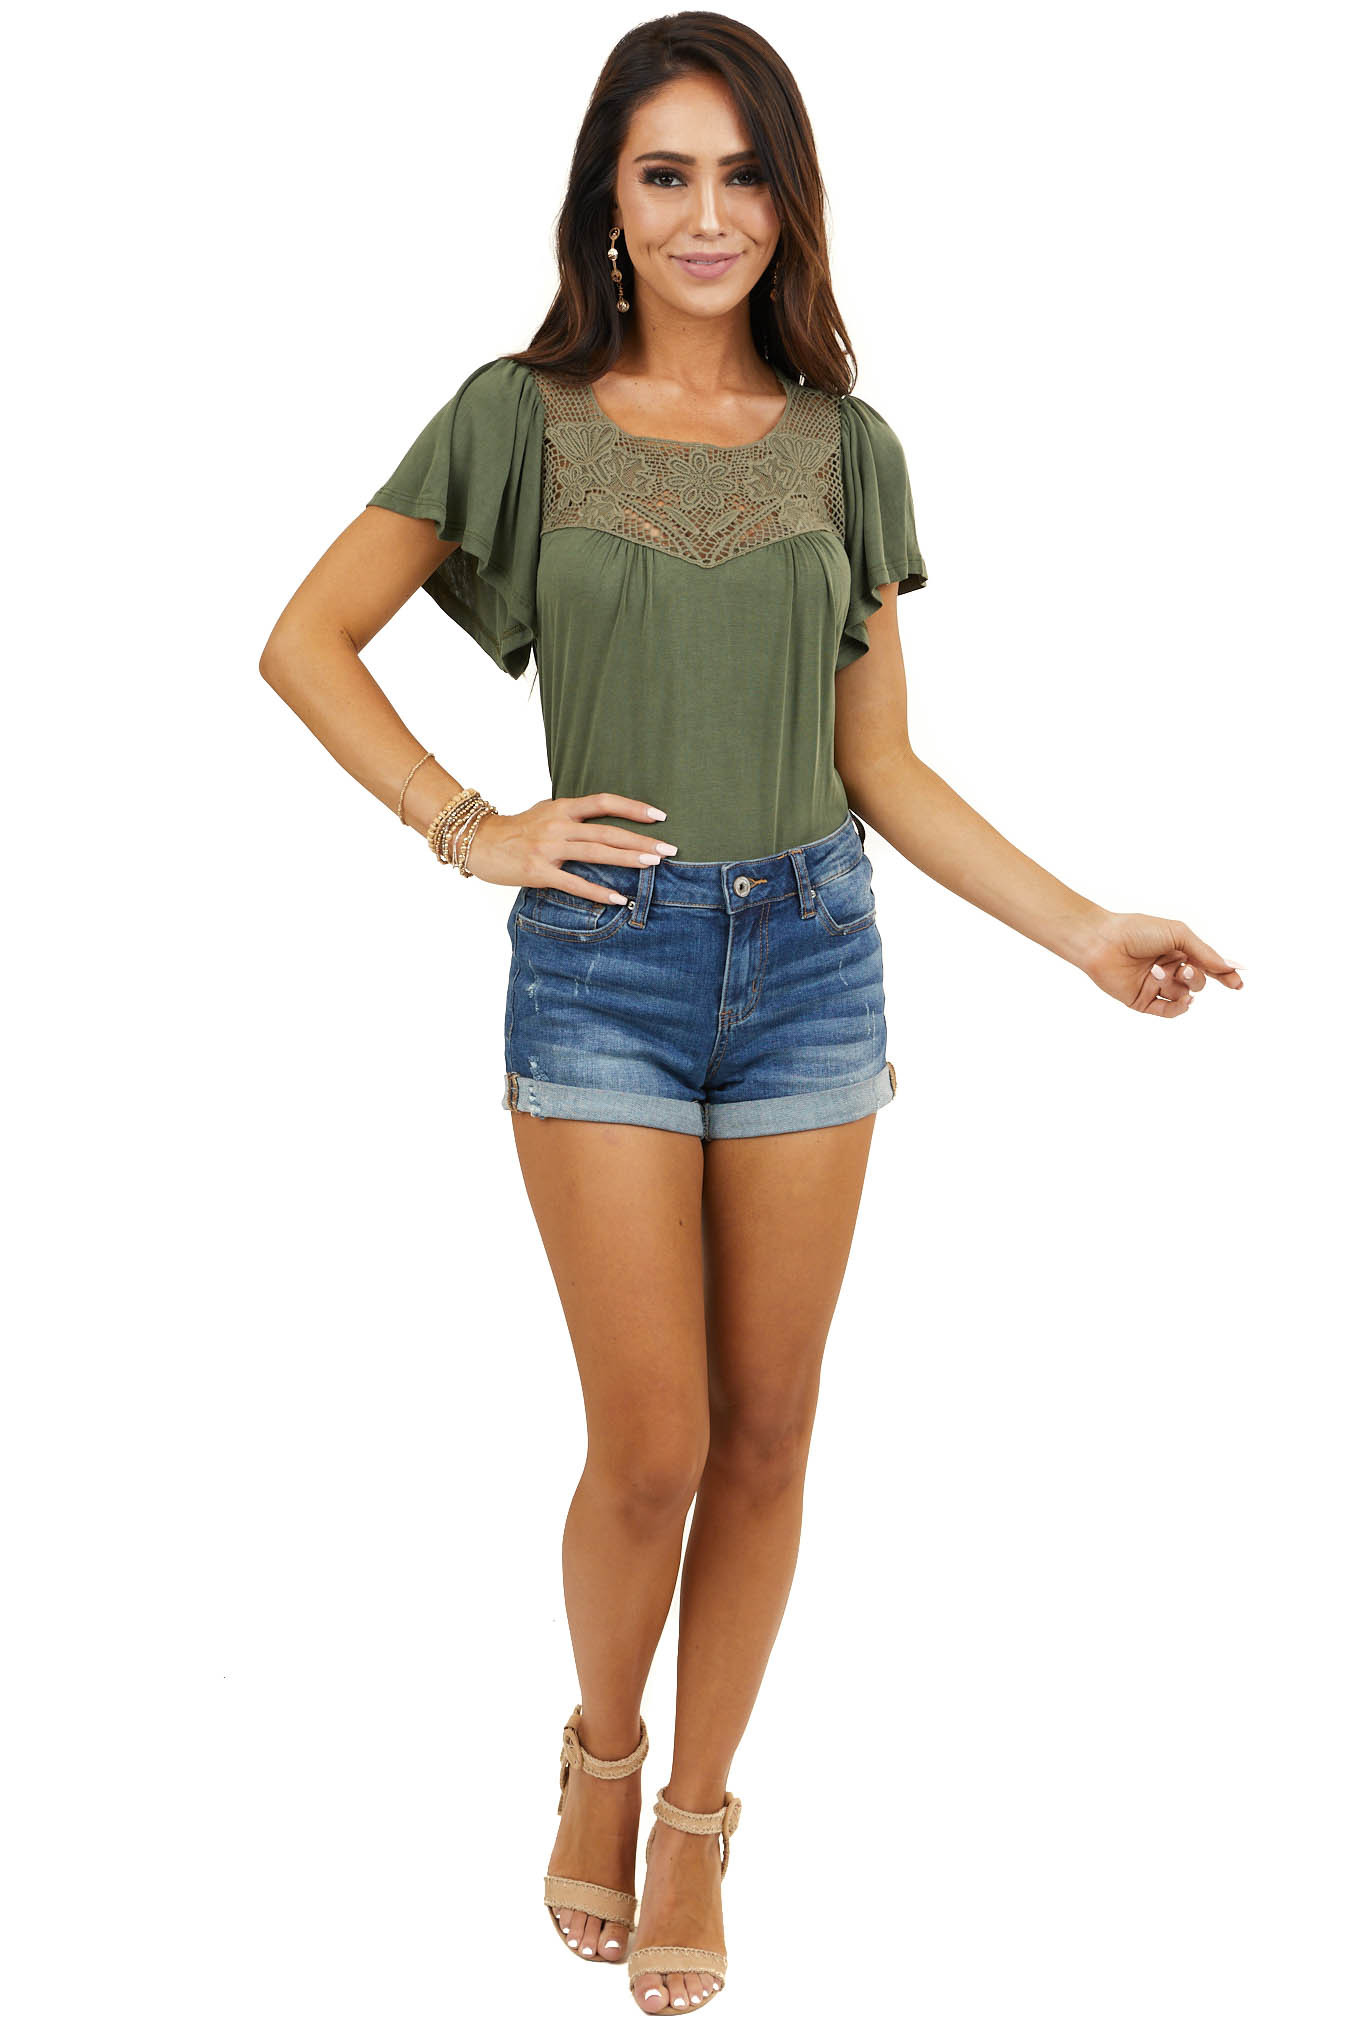 Olive Green Short Sleeve Knit Top with Floral Lace Details